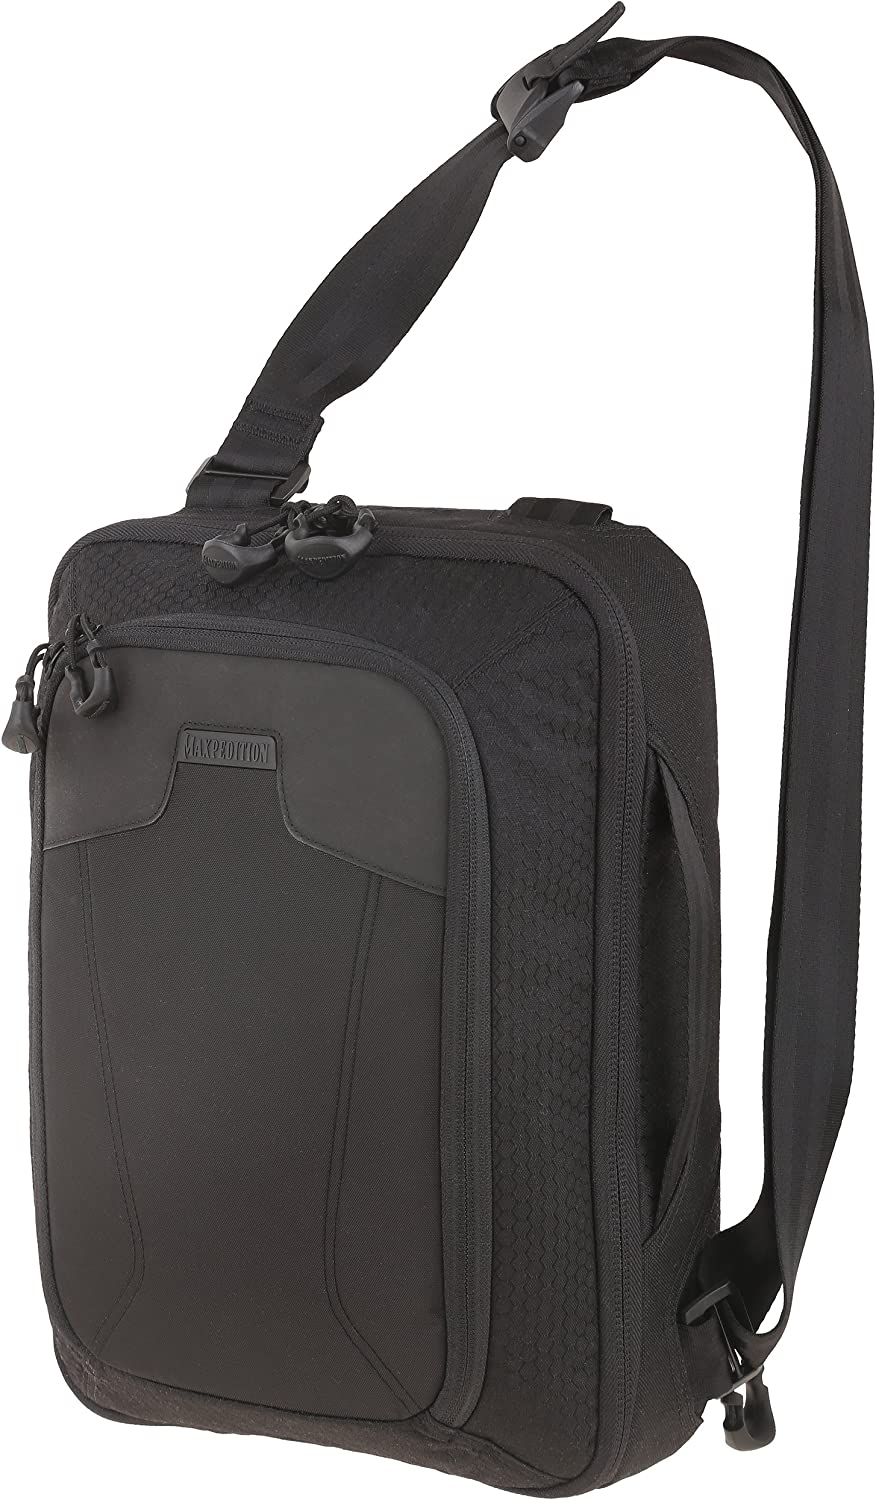 Maxpedition Valence Tech Sling Pack 10L